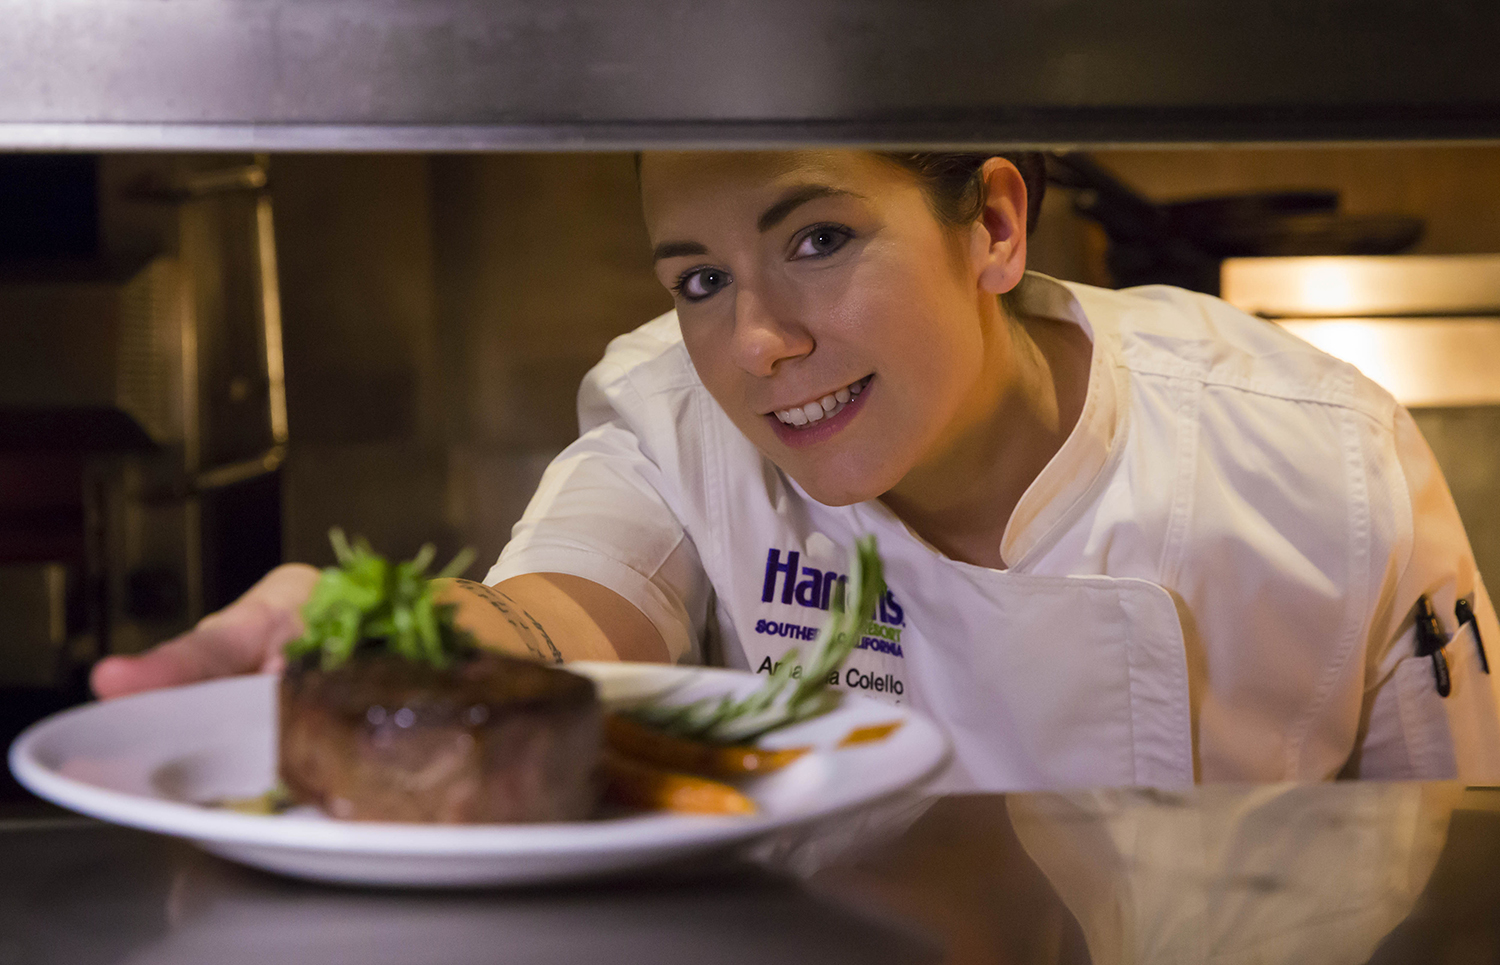 Chef Amanda Collelo serves up a dish for SD Restaurant Week.